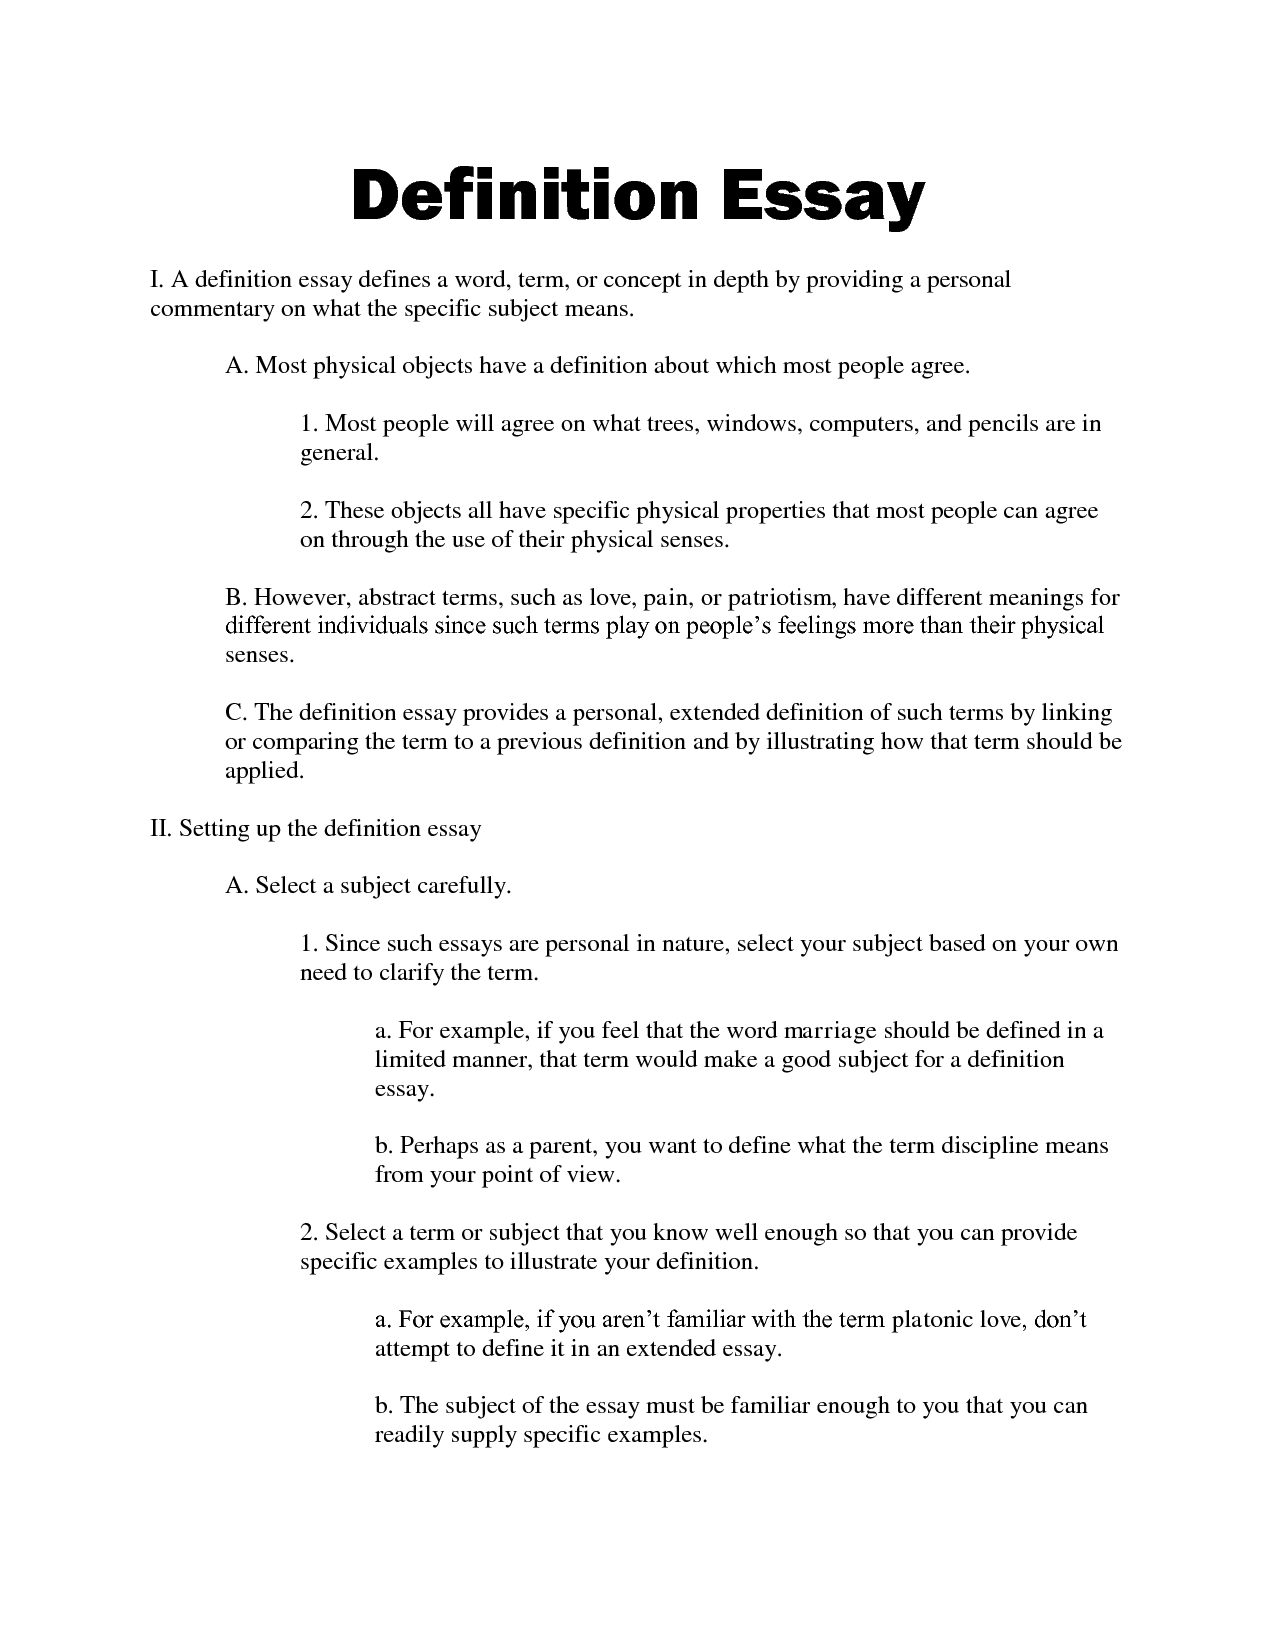 006 Definition Essay Topics Gj60o8orim Striking For College Students Middle School Full